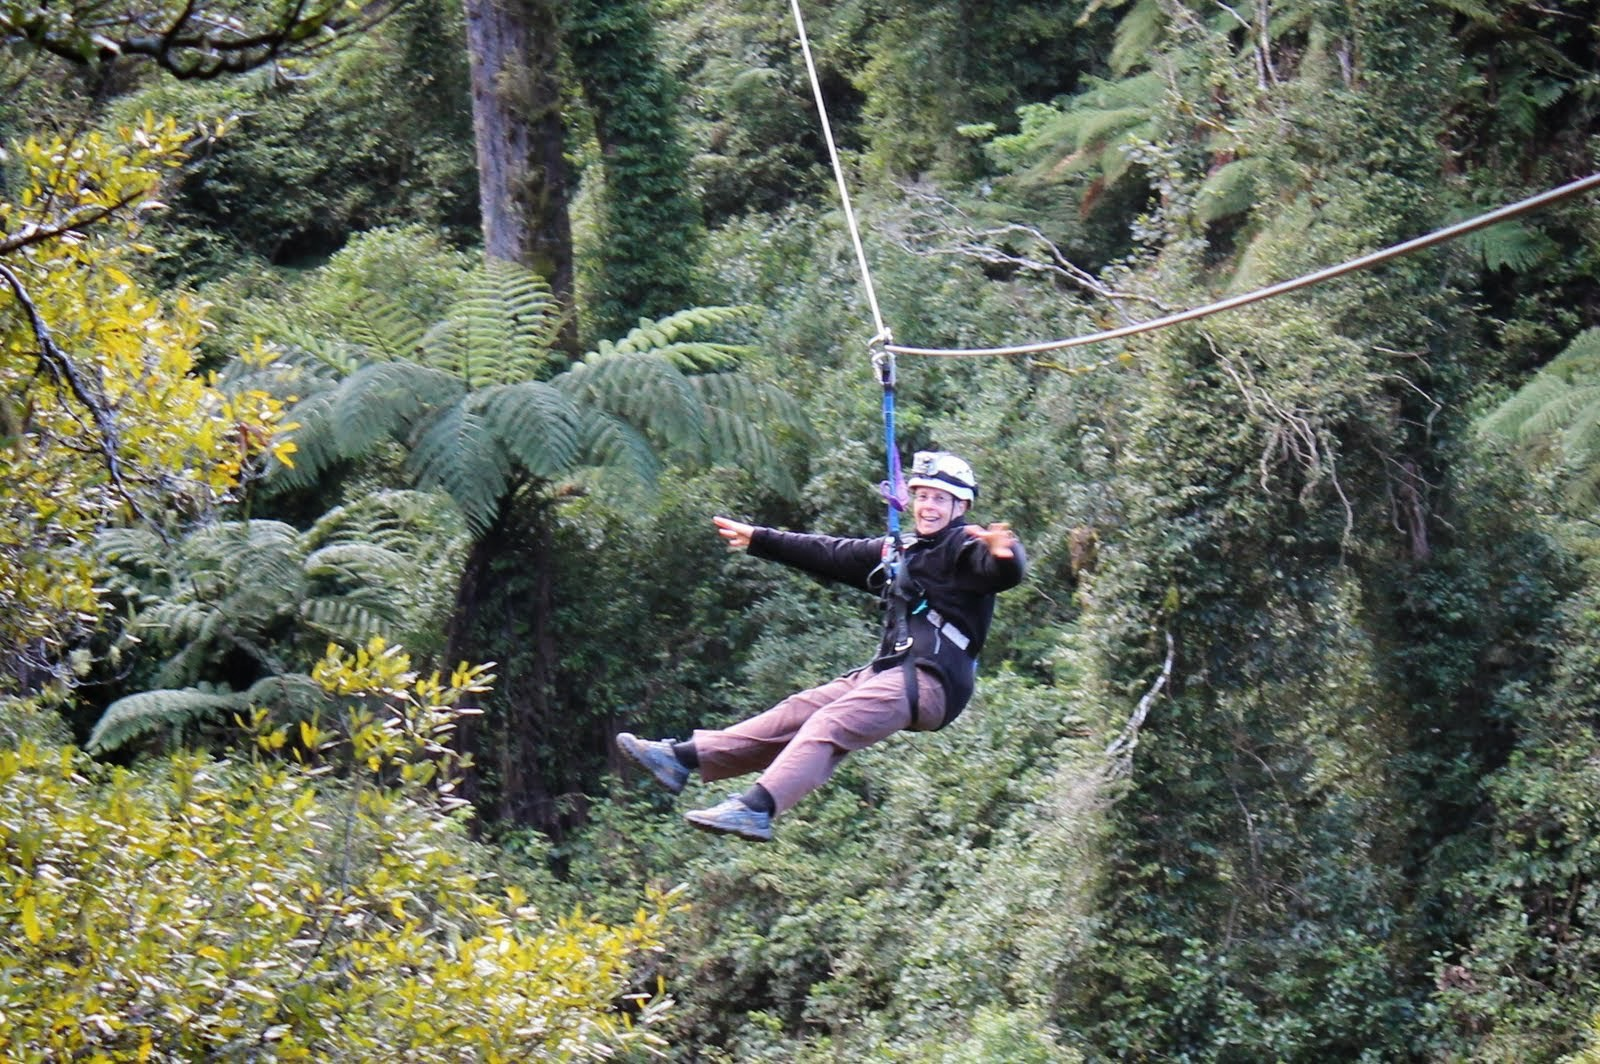 Me dangling for a zipline after finally unclenching my hands from the rope.